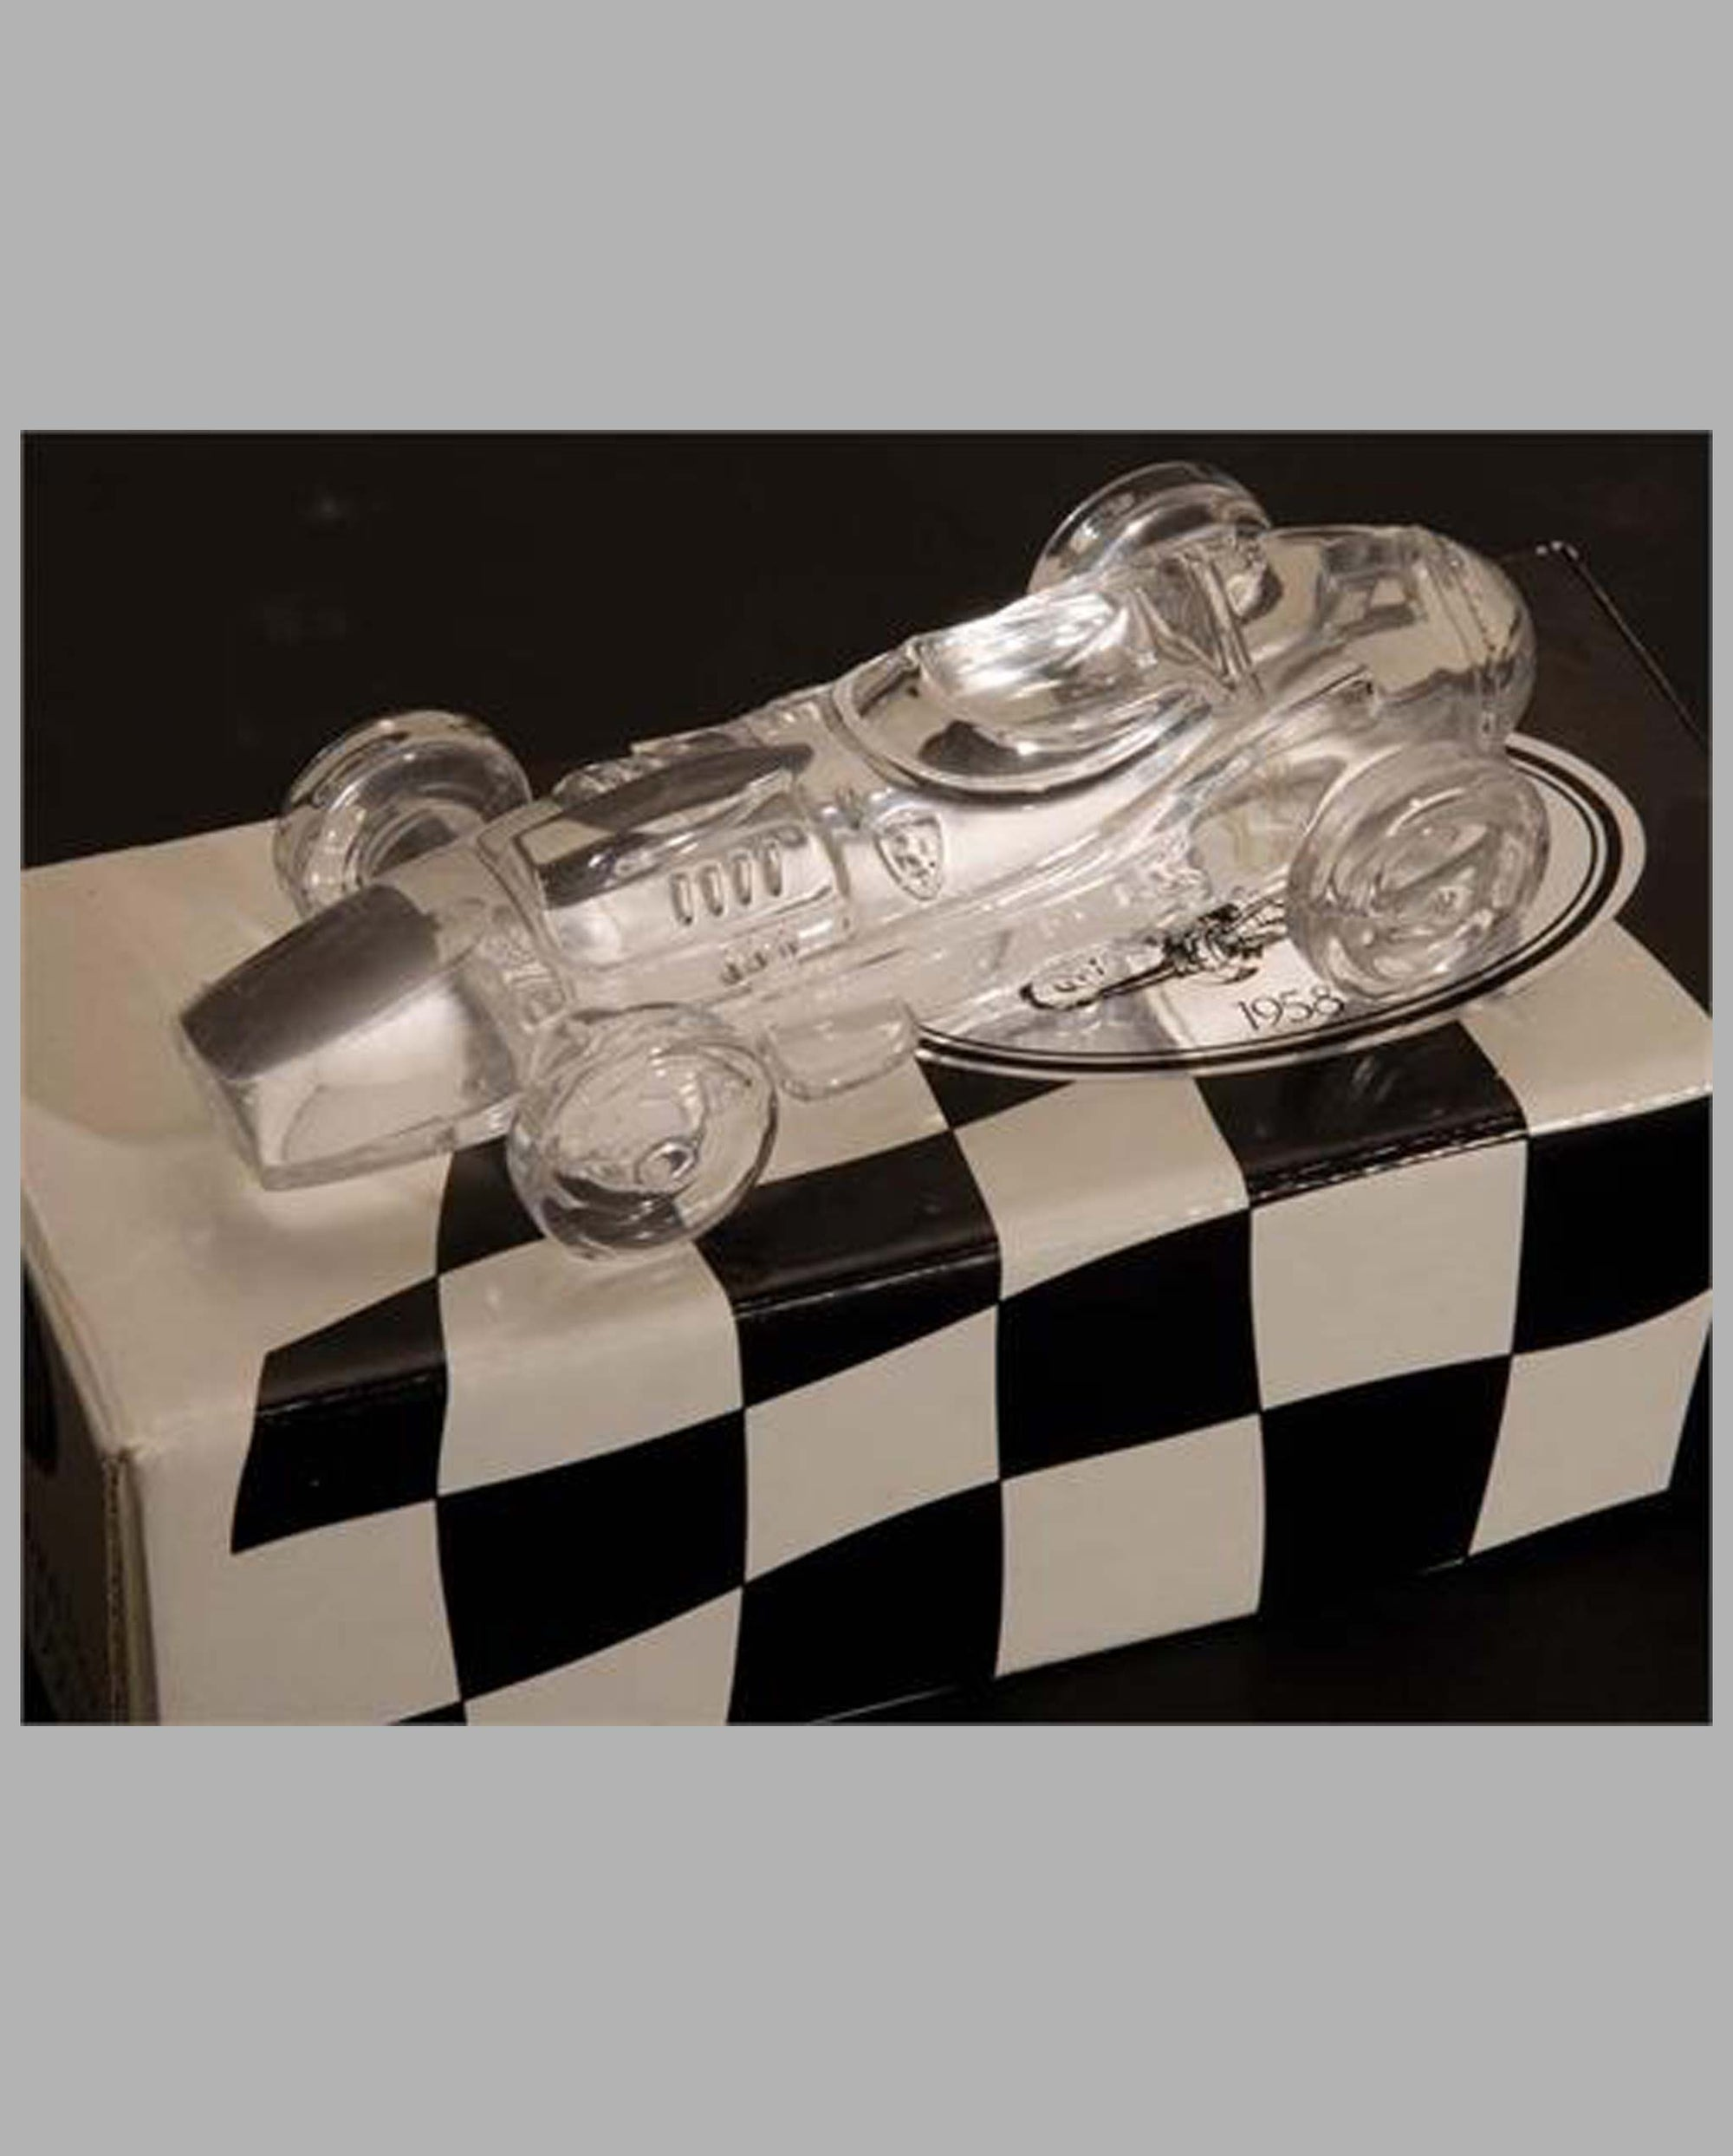 1958 Ferrari Dino 246 crystal sculpture paperweight by Atlantis (Portugal)